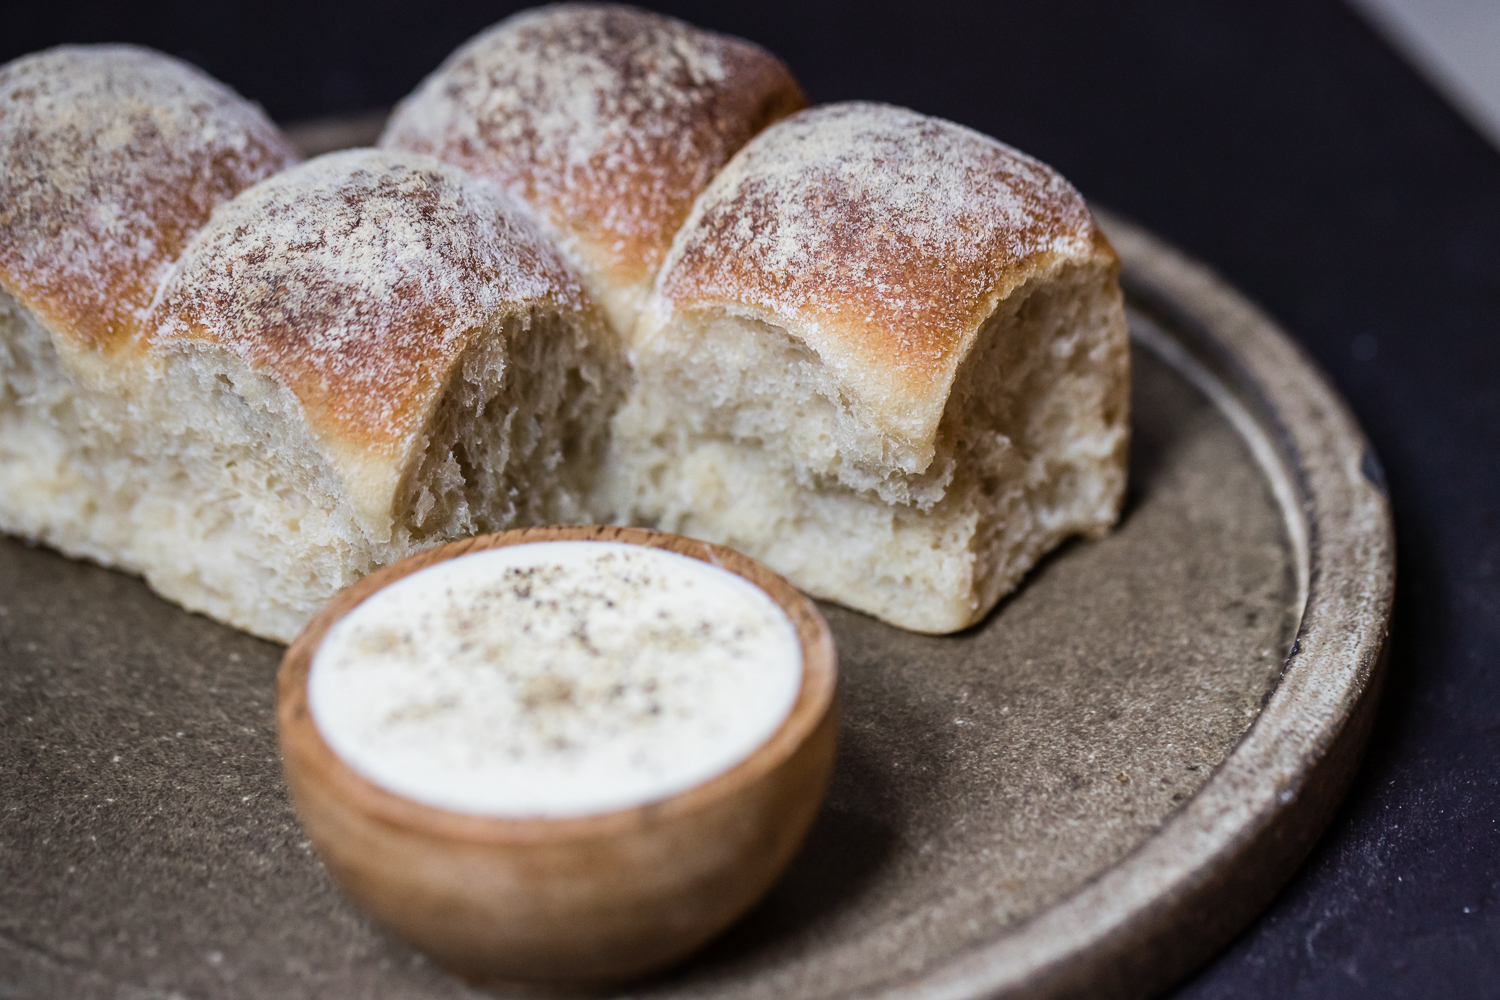 Bread rolls on a plate with butter